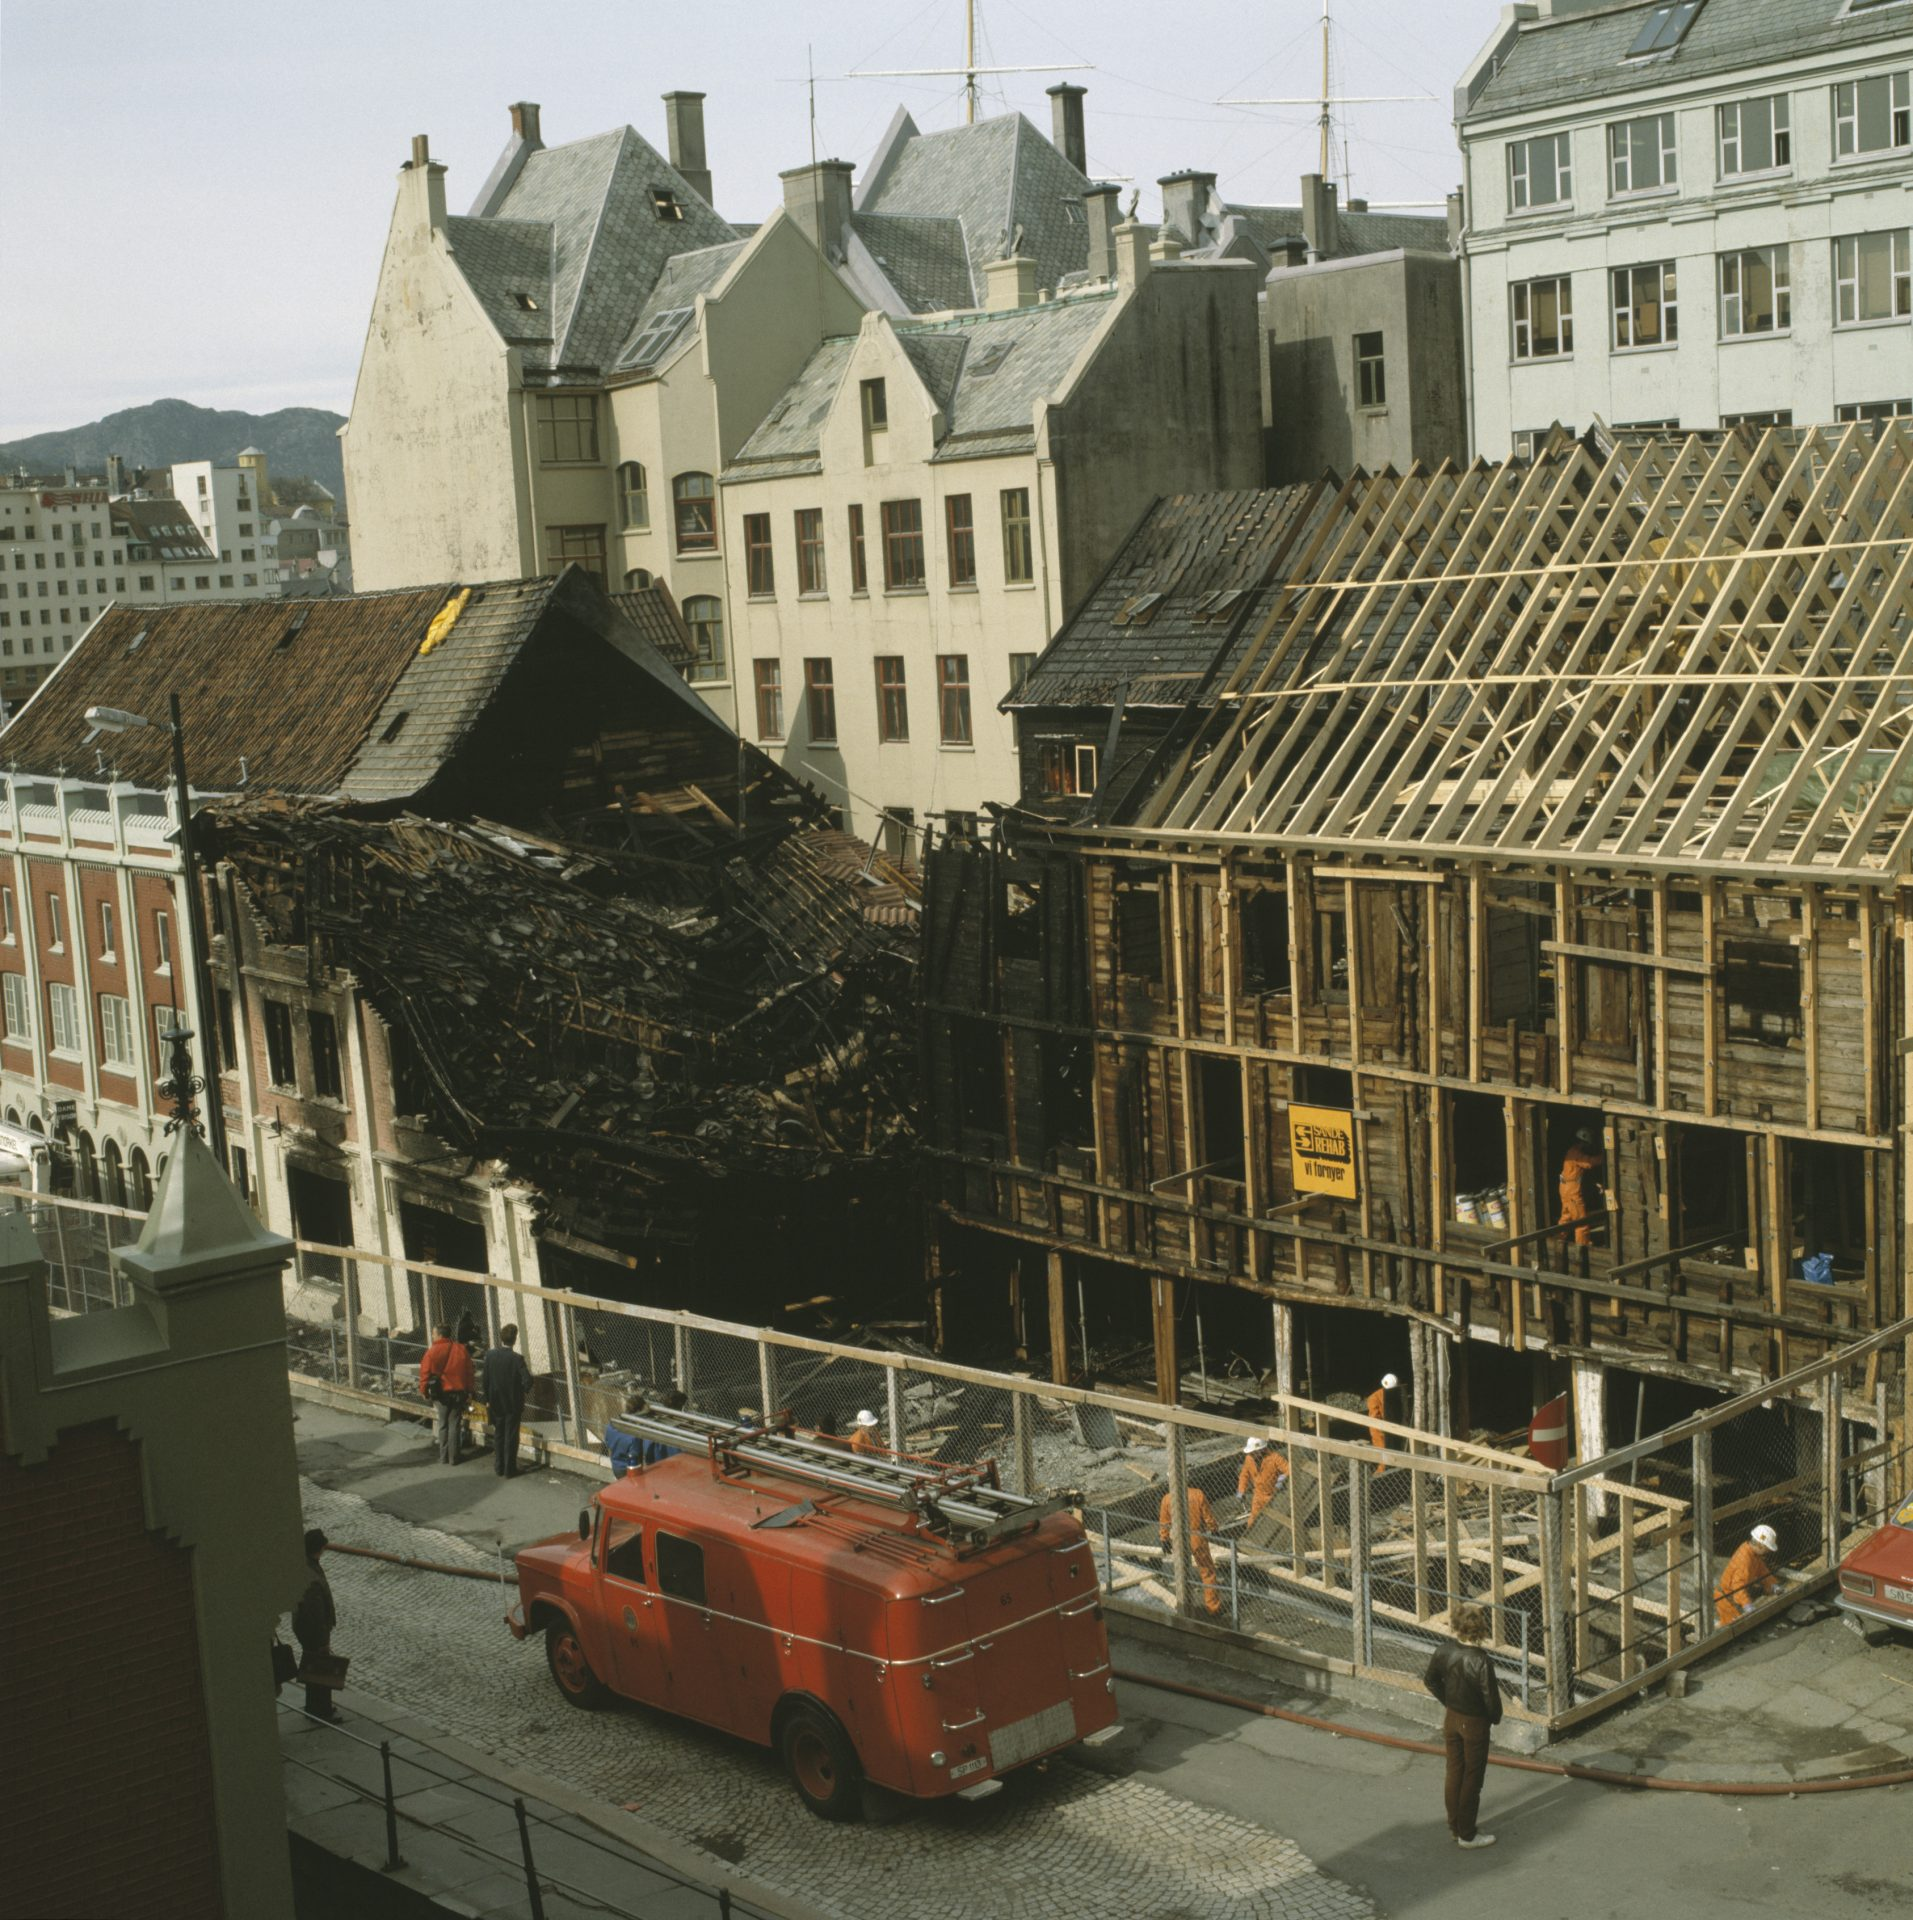 Fire in Bergen. After the Finnegården fire in 1982. Photo: Arve Kjersheim, the Directorate for Cultural Heritage